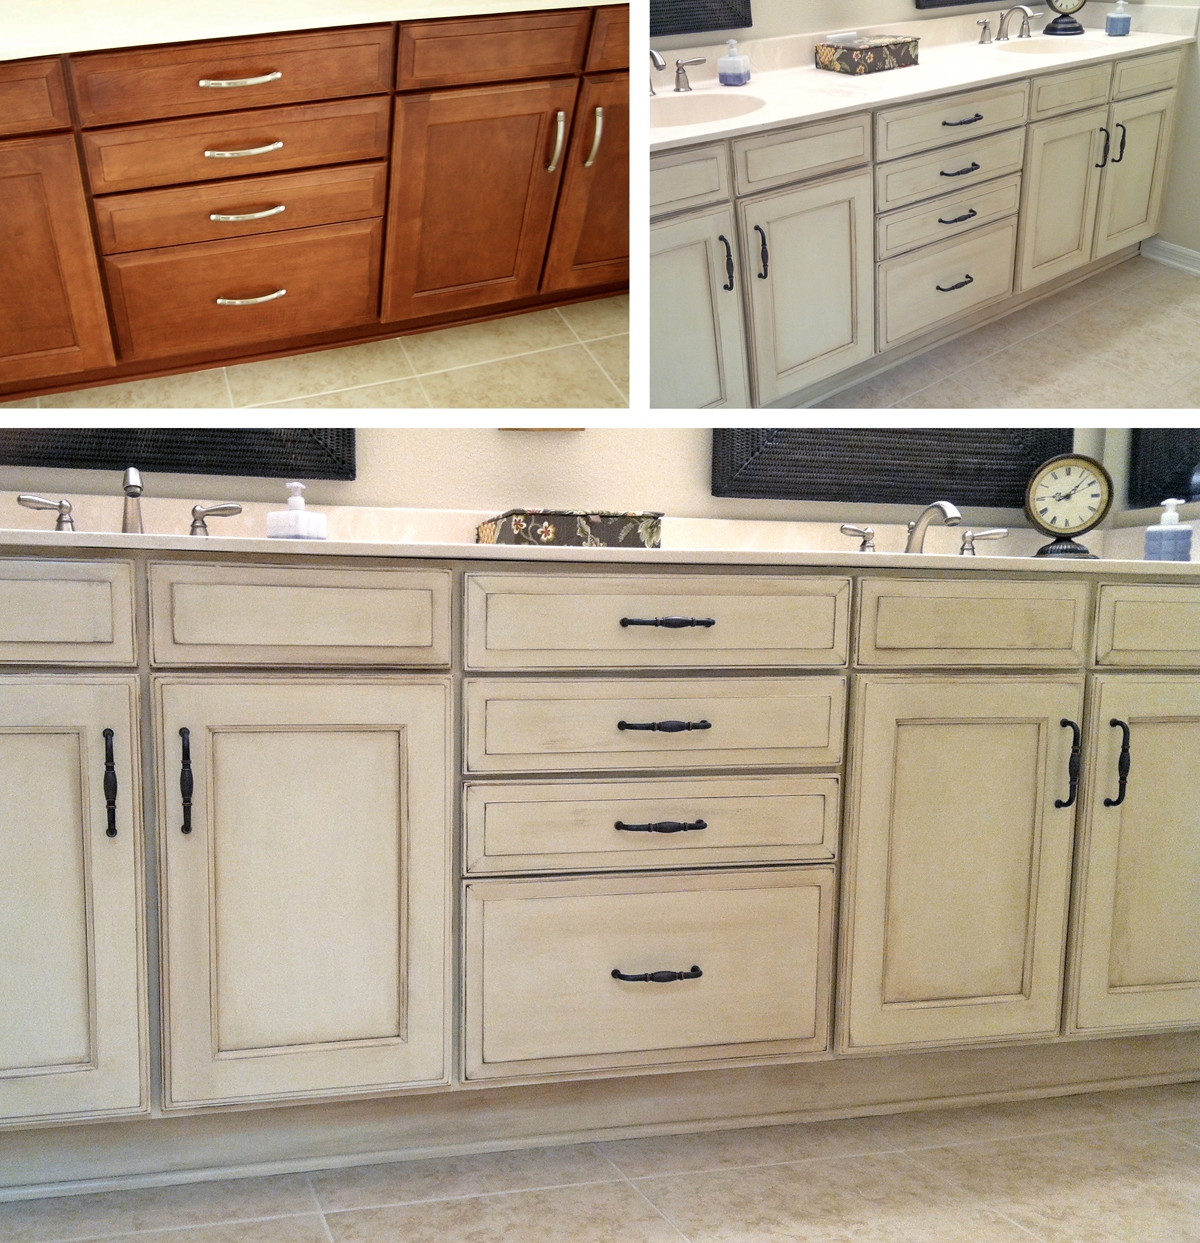 Can You Use Kitchen Cabinets In The Bathroombathroom vanity painted with annie sloan chalk paint first coat